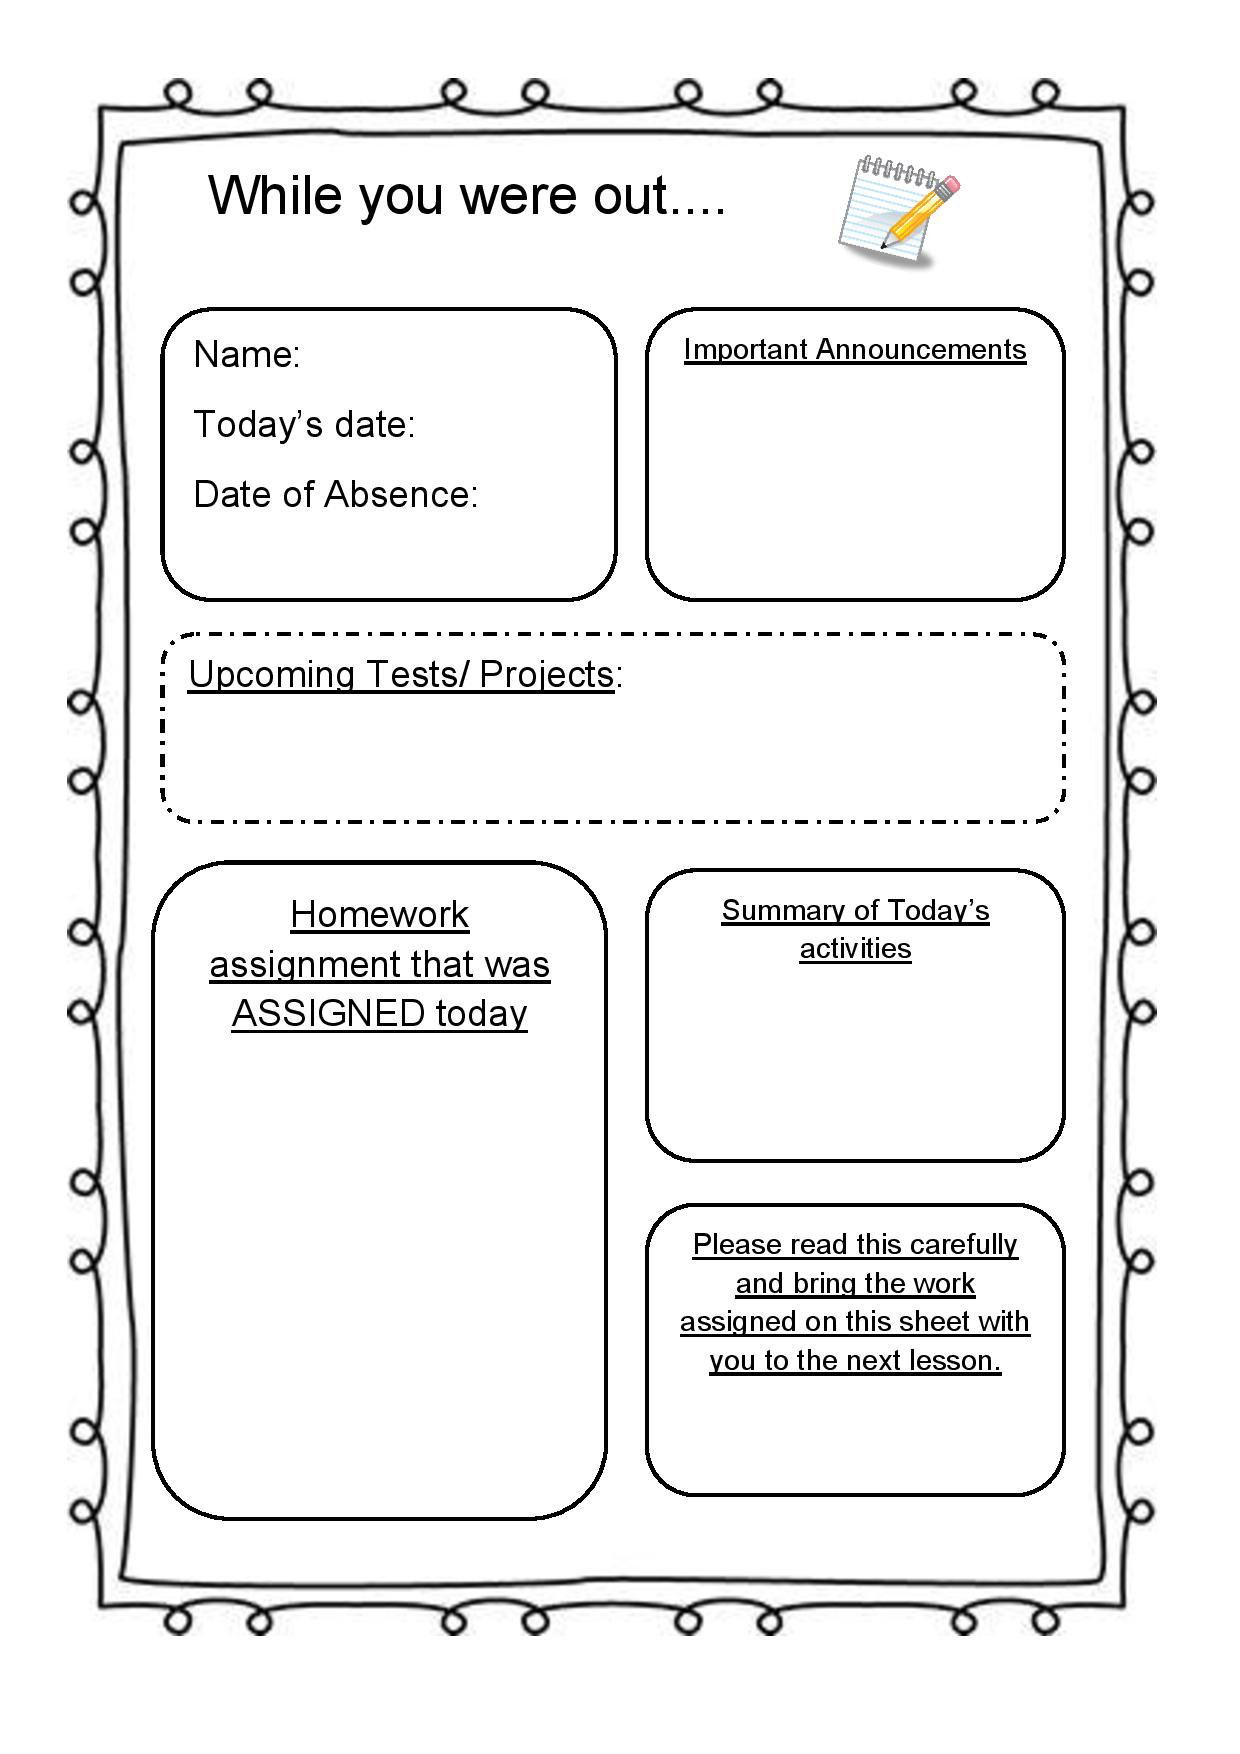 student aside mission sheet